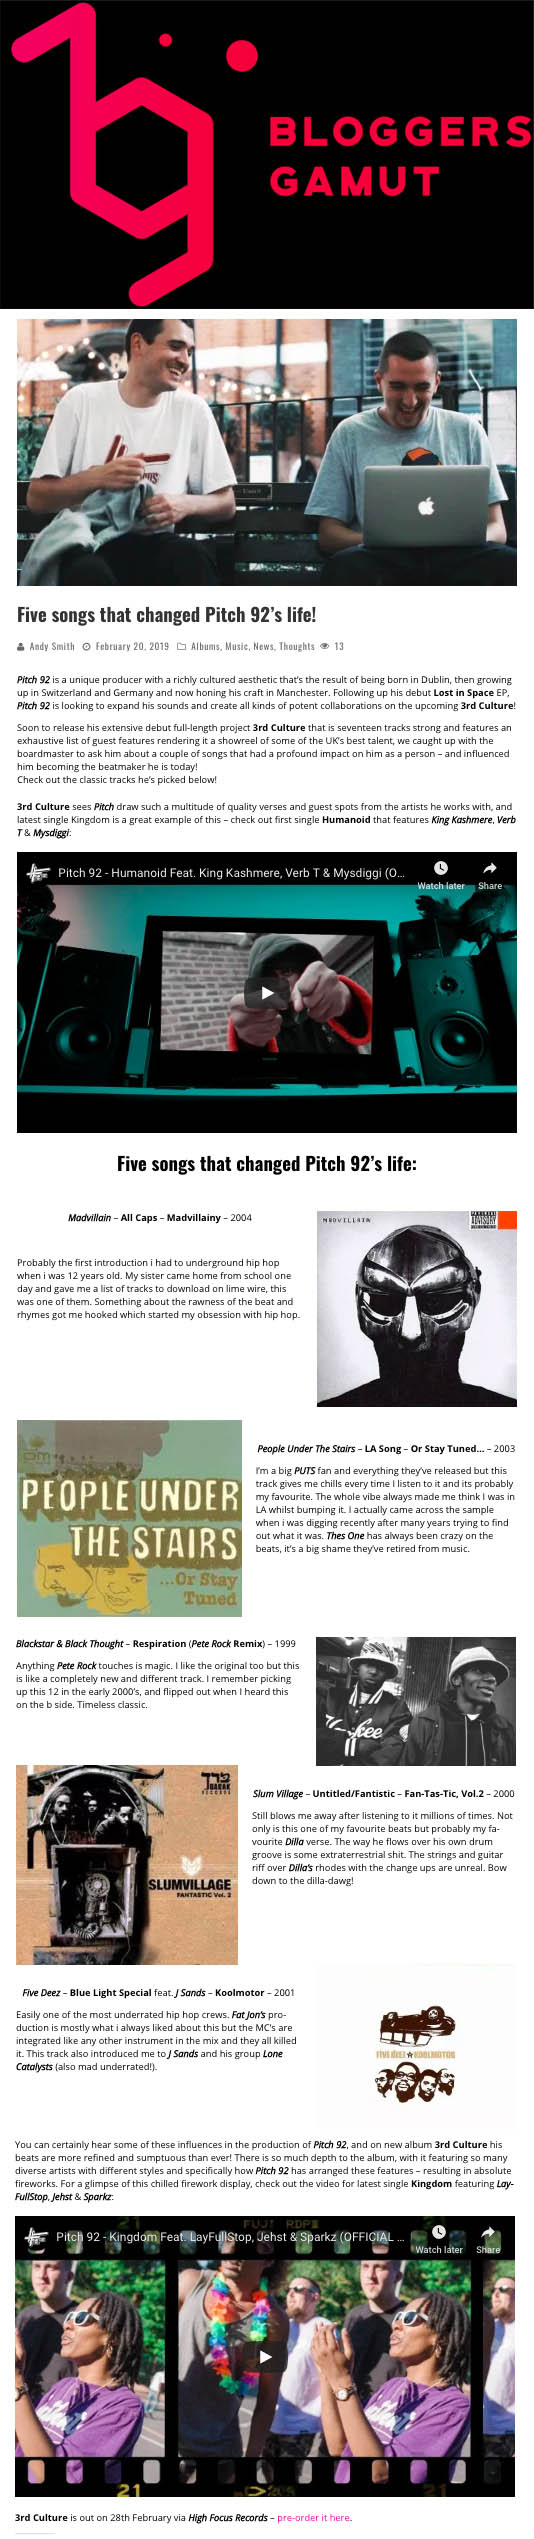 Pitch 92 5 Records That Changed My Life Bloggers Gamut Feature